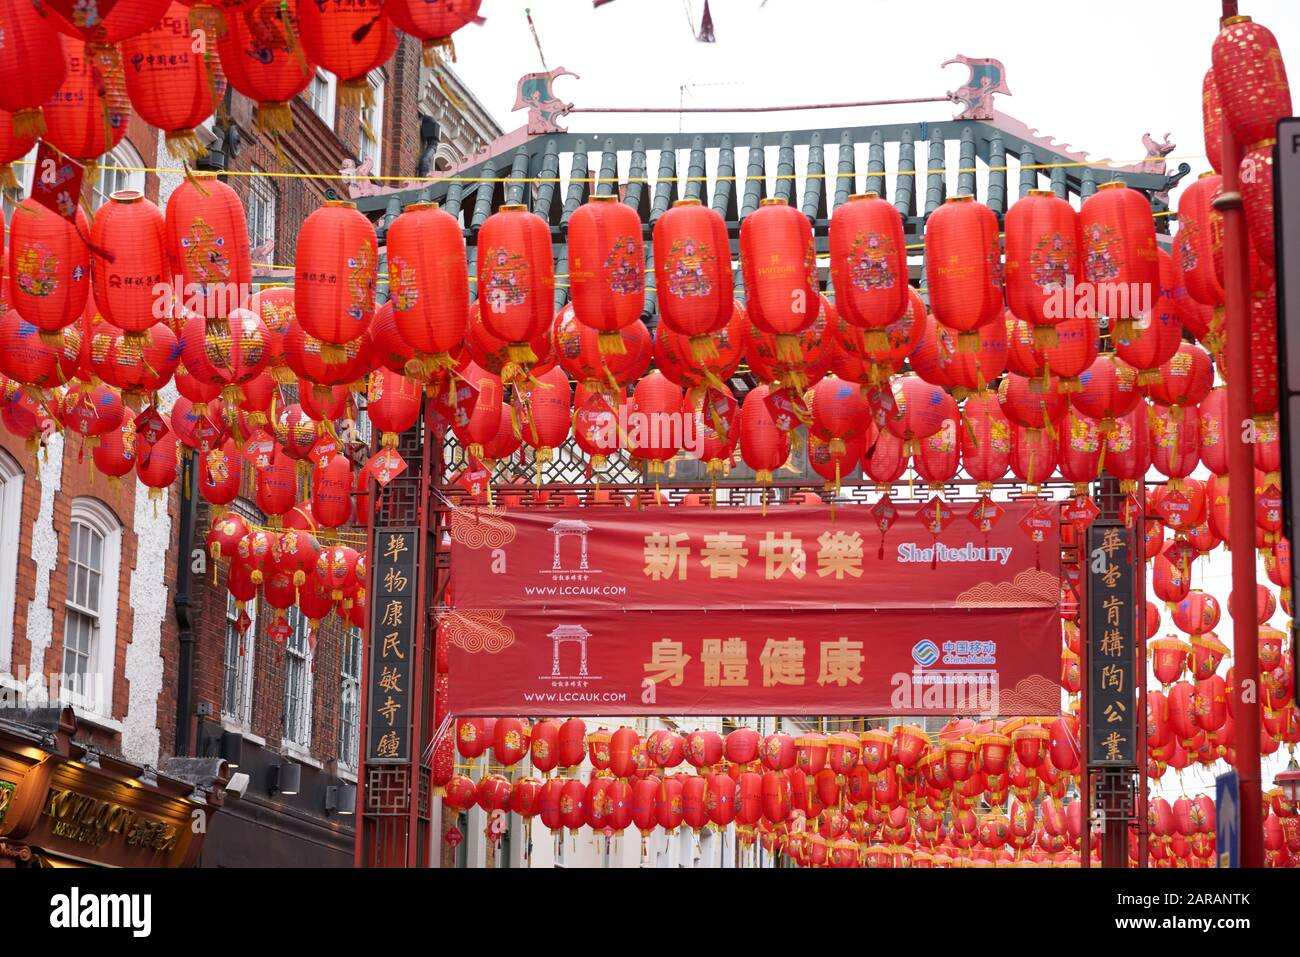 Chinese New Year 2020 London Chinatown London With Celebration Red Lanterns And Vibrant Ornamental Gate With Traditional Qing Dynasty Decorations Stock Photo Alamy